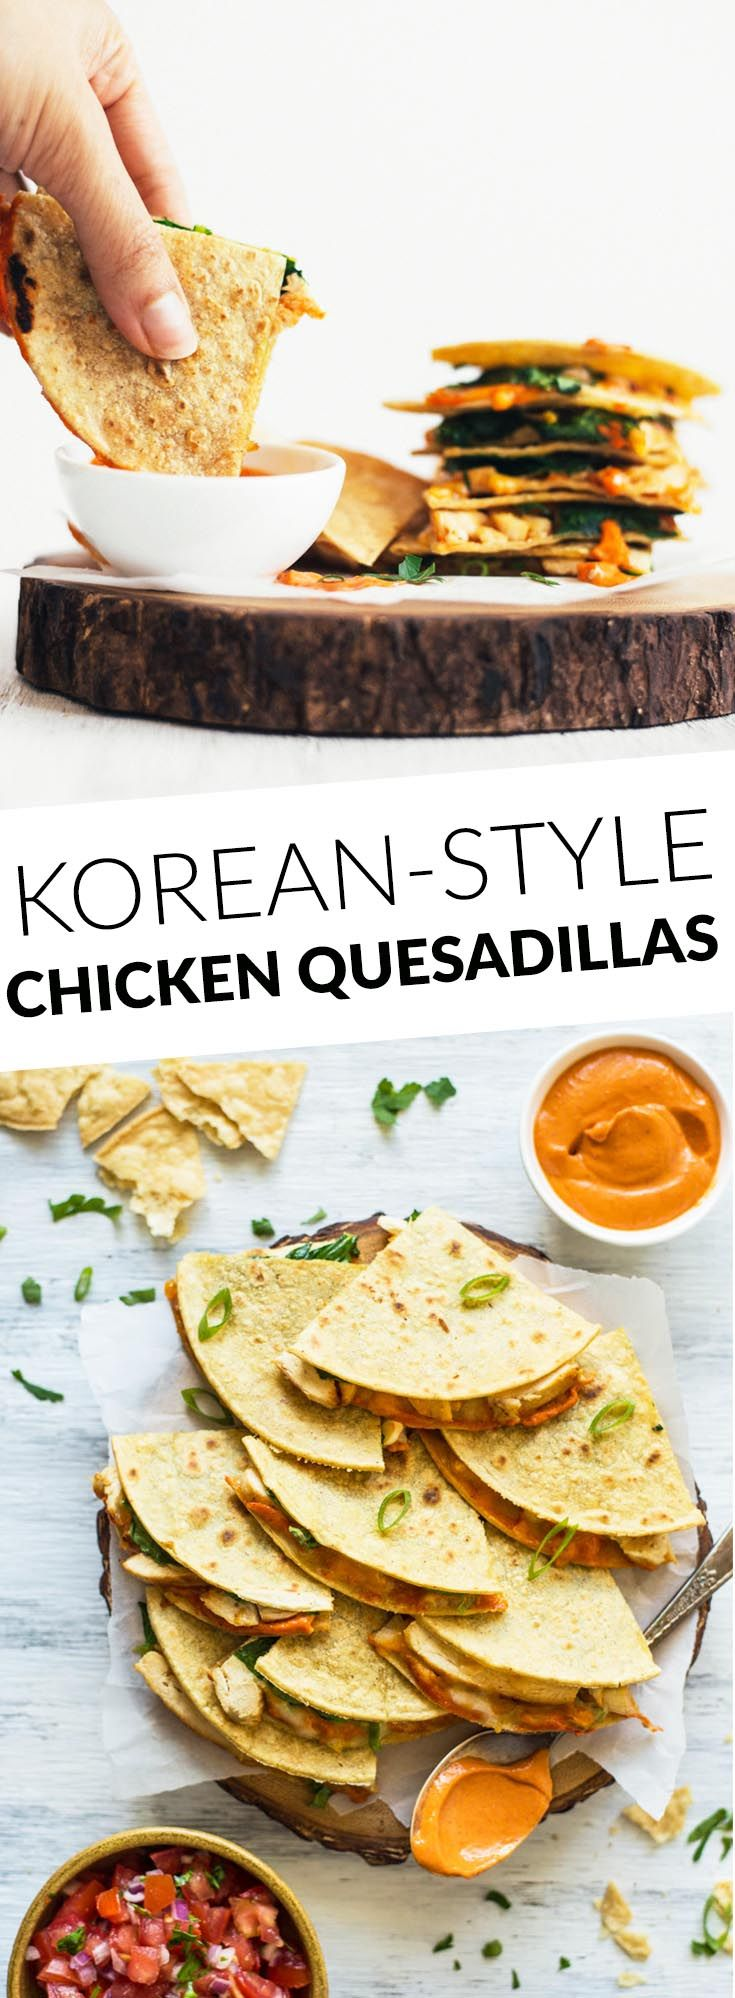 Chicken Quesadillas with Gochujang Sauce Recipe (With